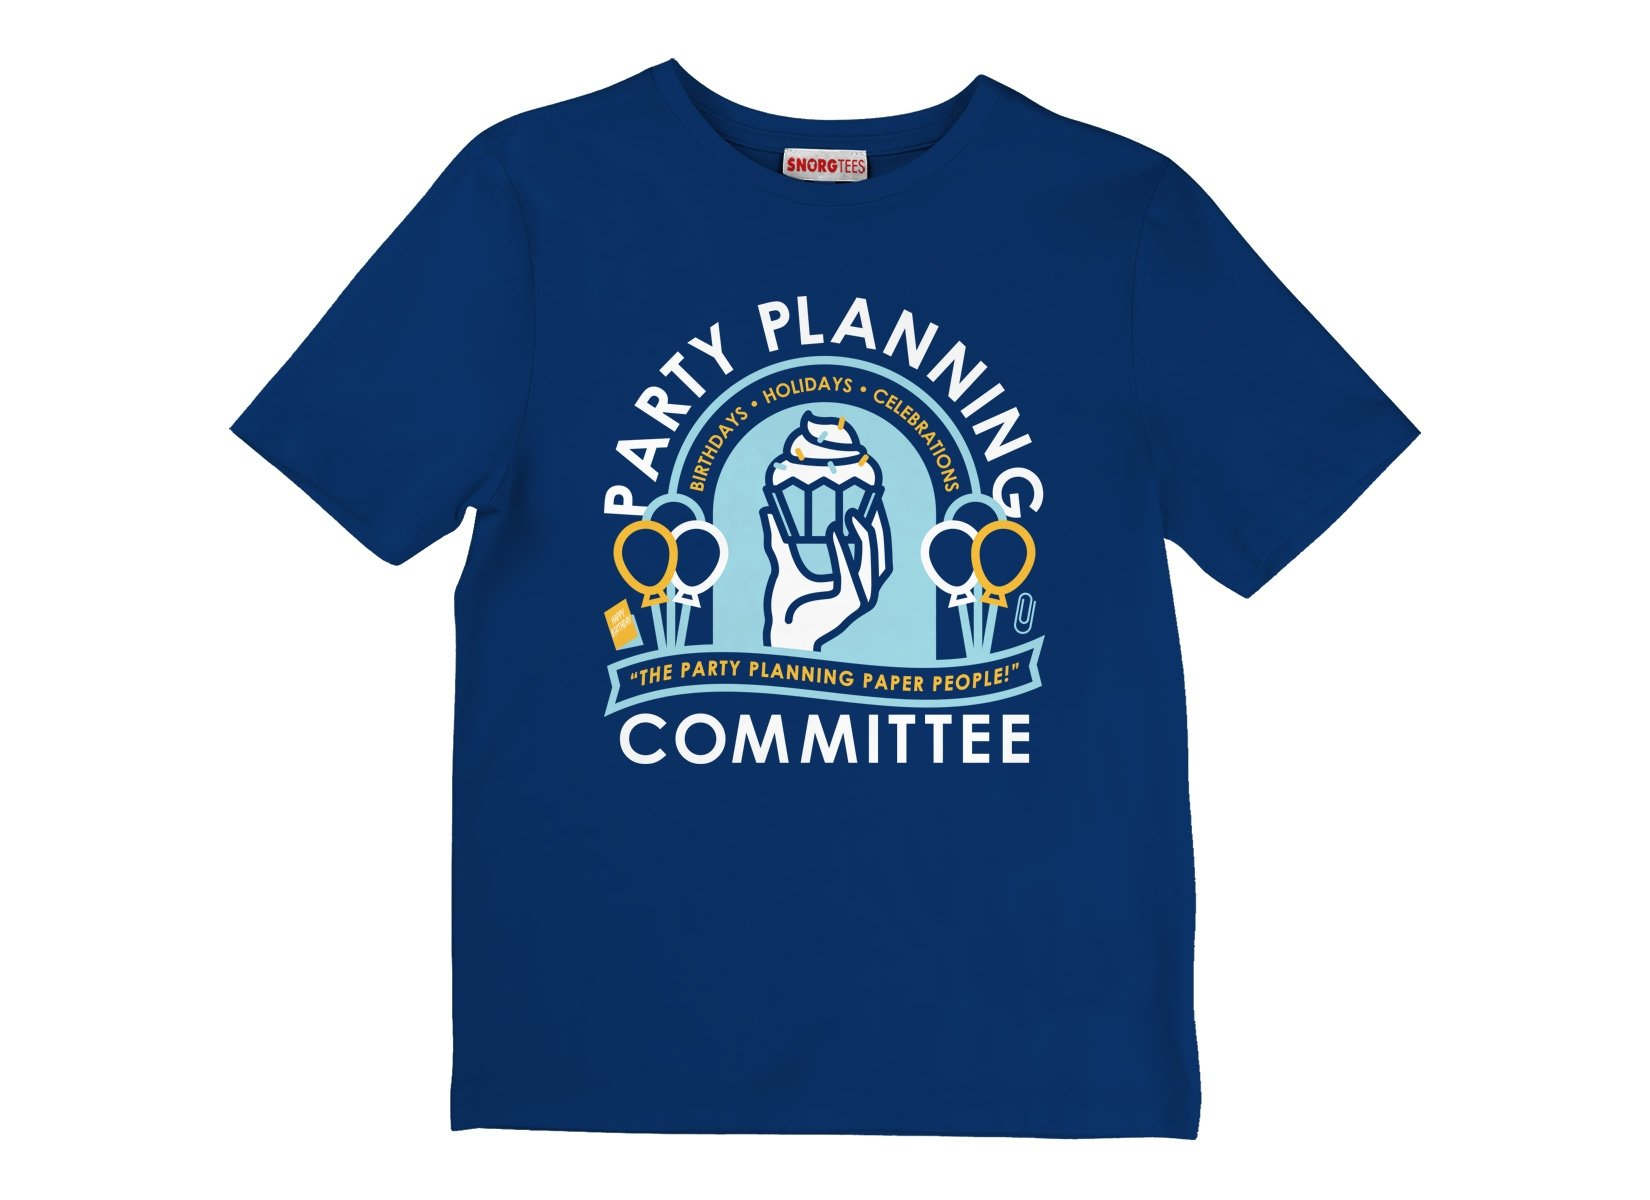 Party Planning Committee on Kids T-Shirt